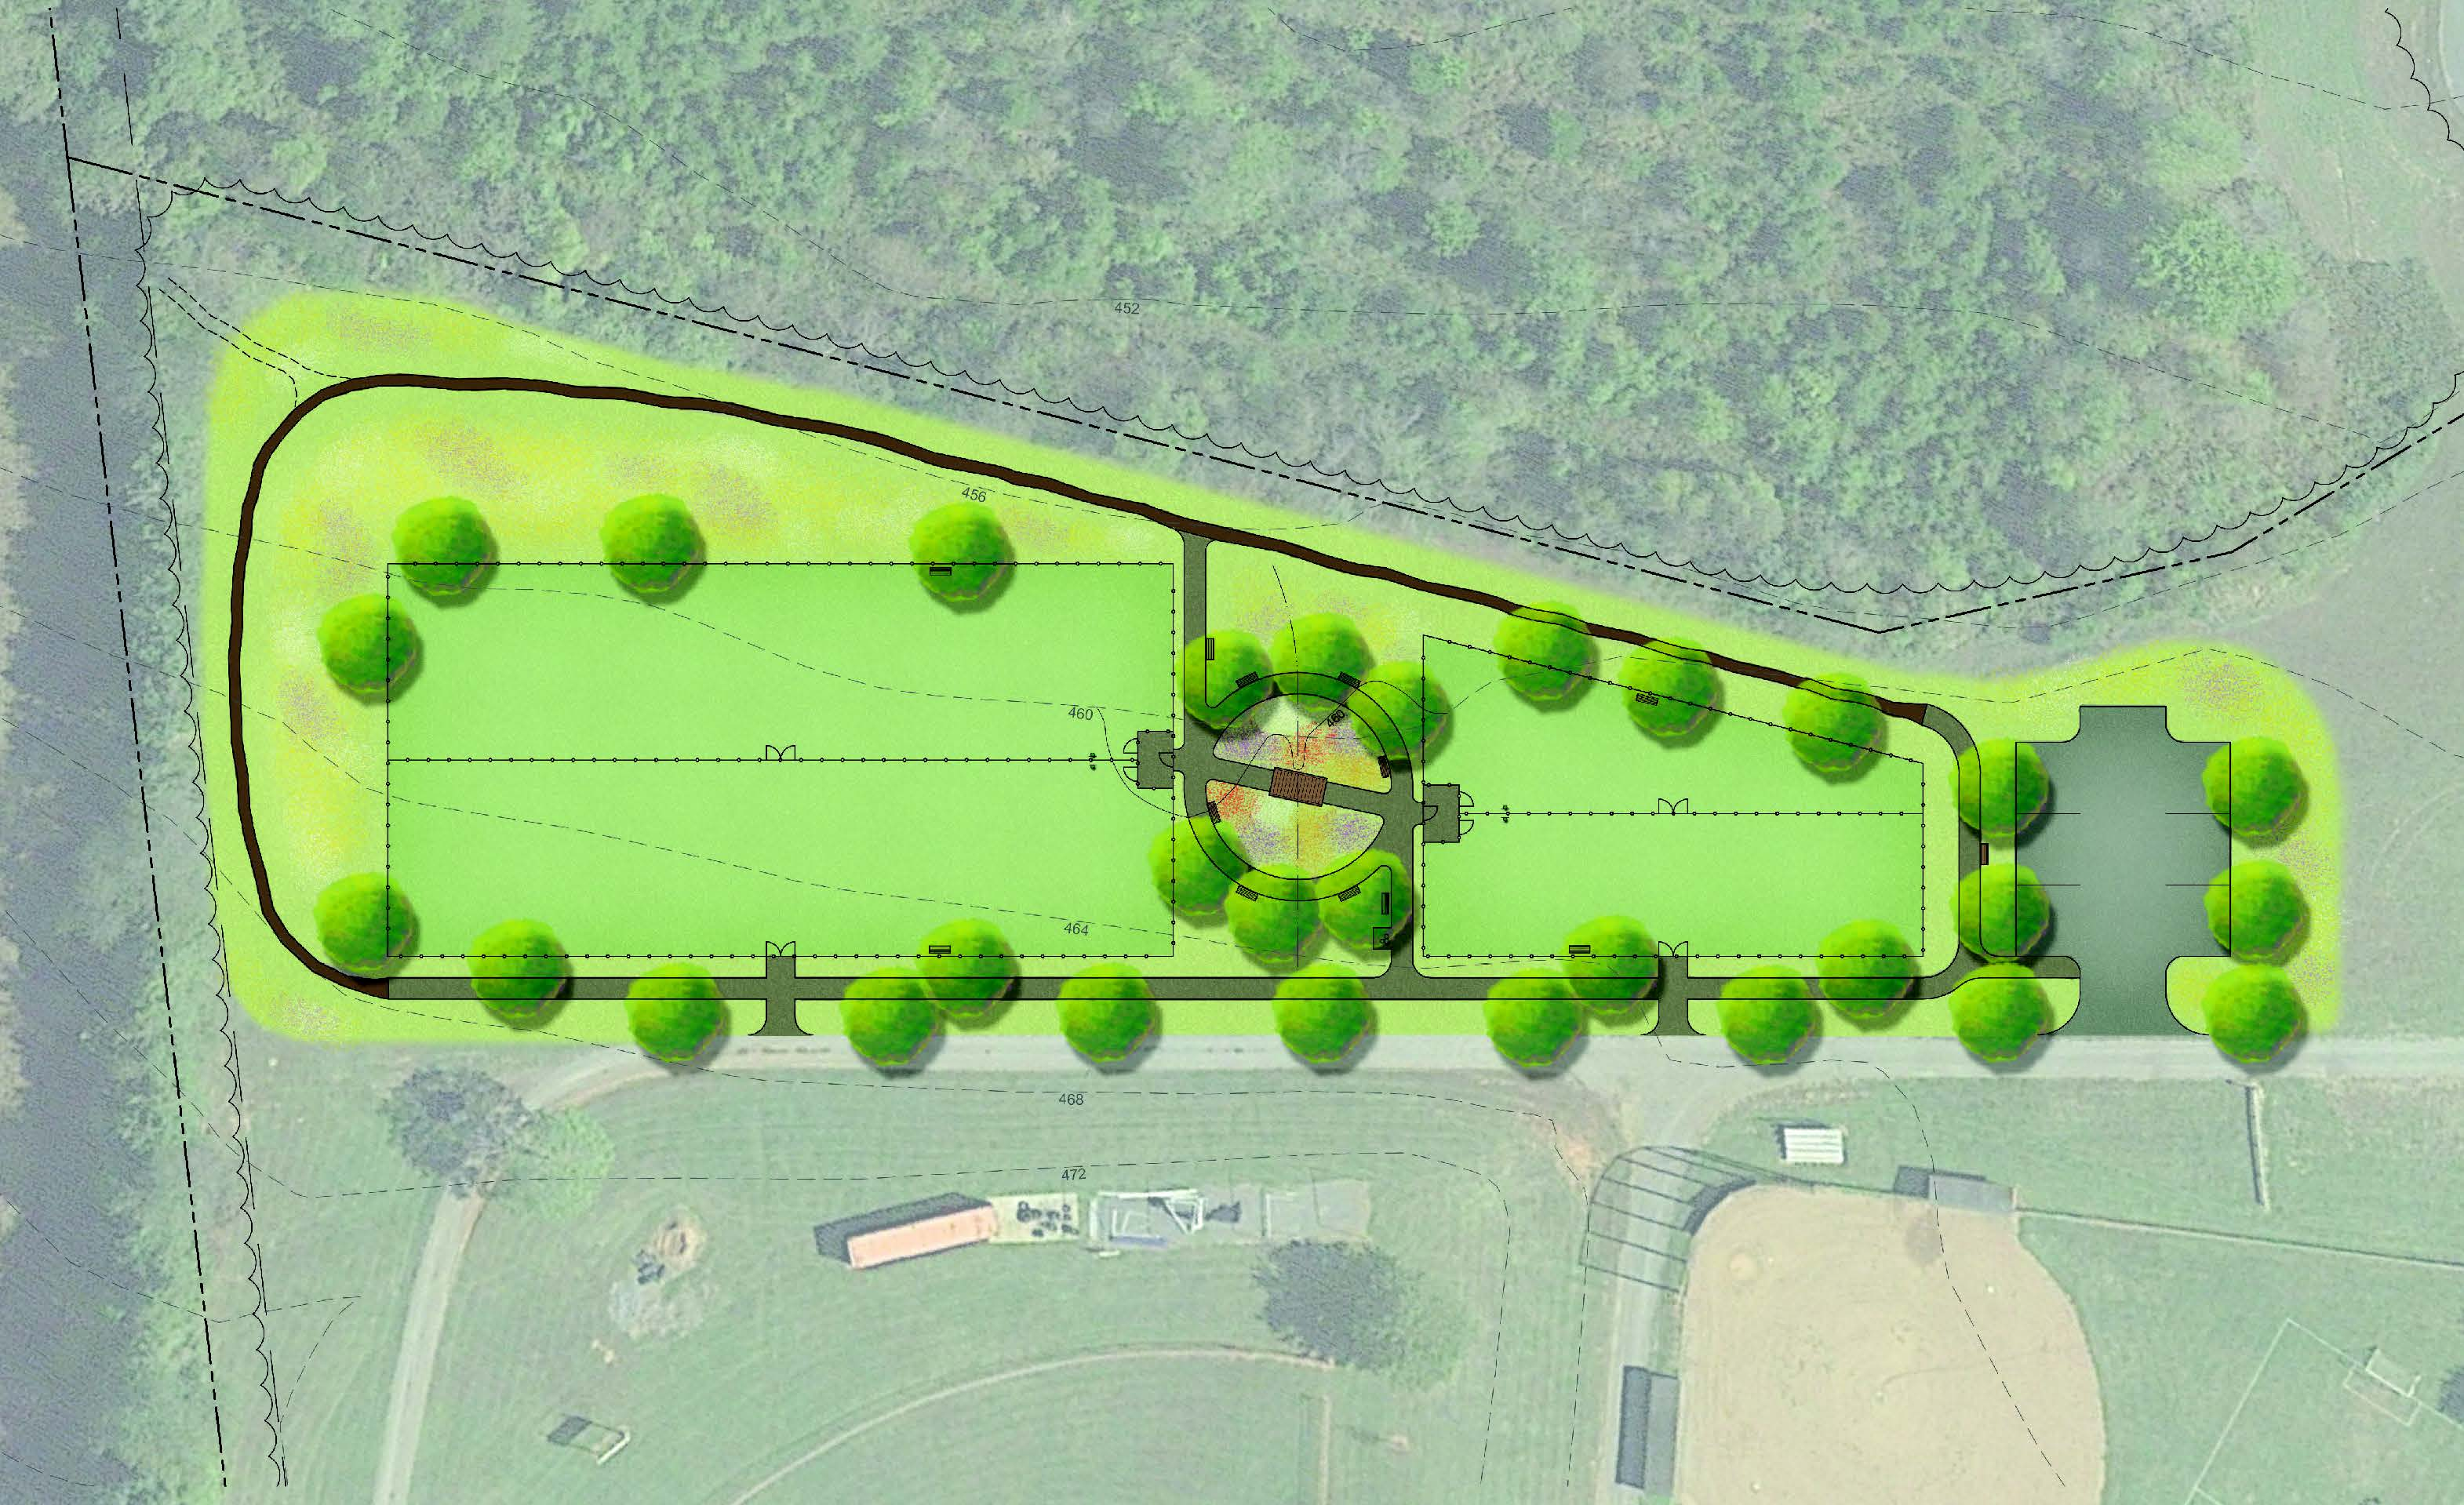 A concept plan of Skydog Orange Dog Park at Booster Park